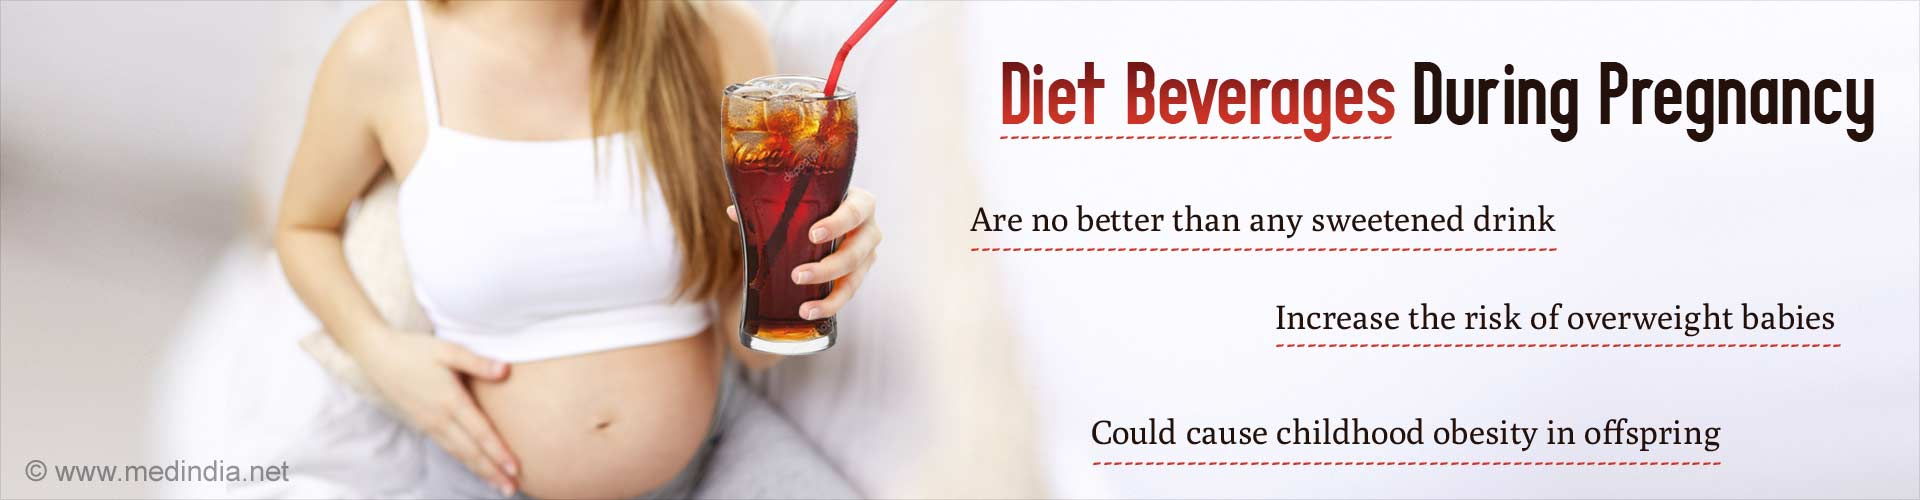 Diet beverages during pregnancy - Are no better than any sweetened drink - Increase the risk of overweight babies - Could cause childhood obesity in offspring